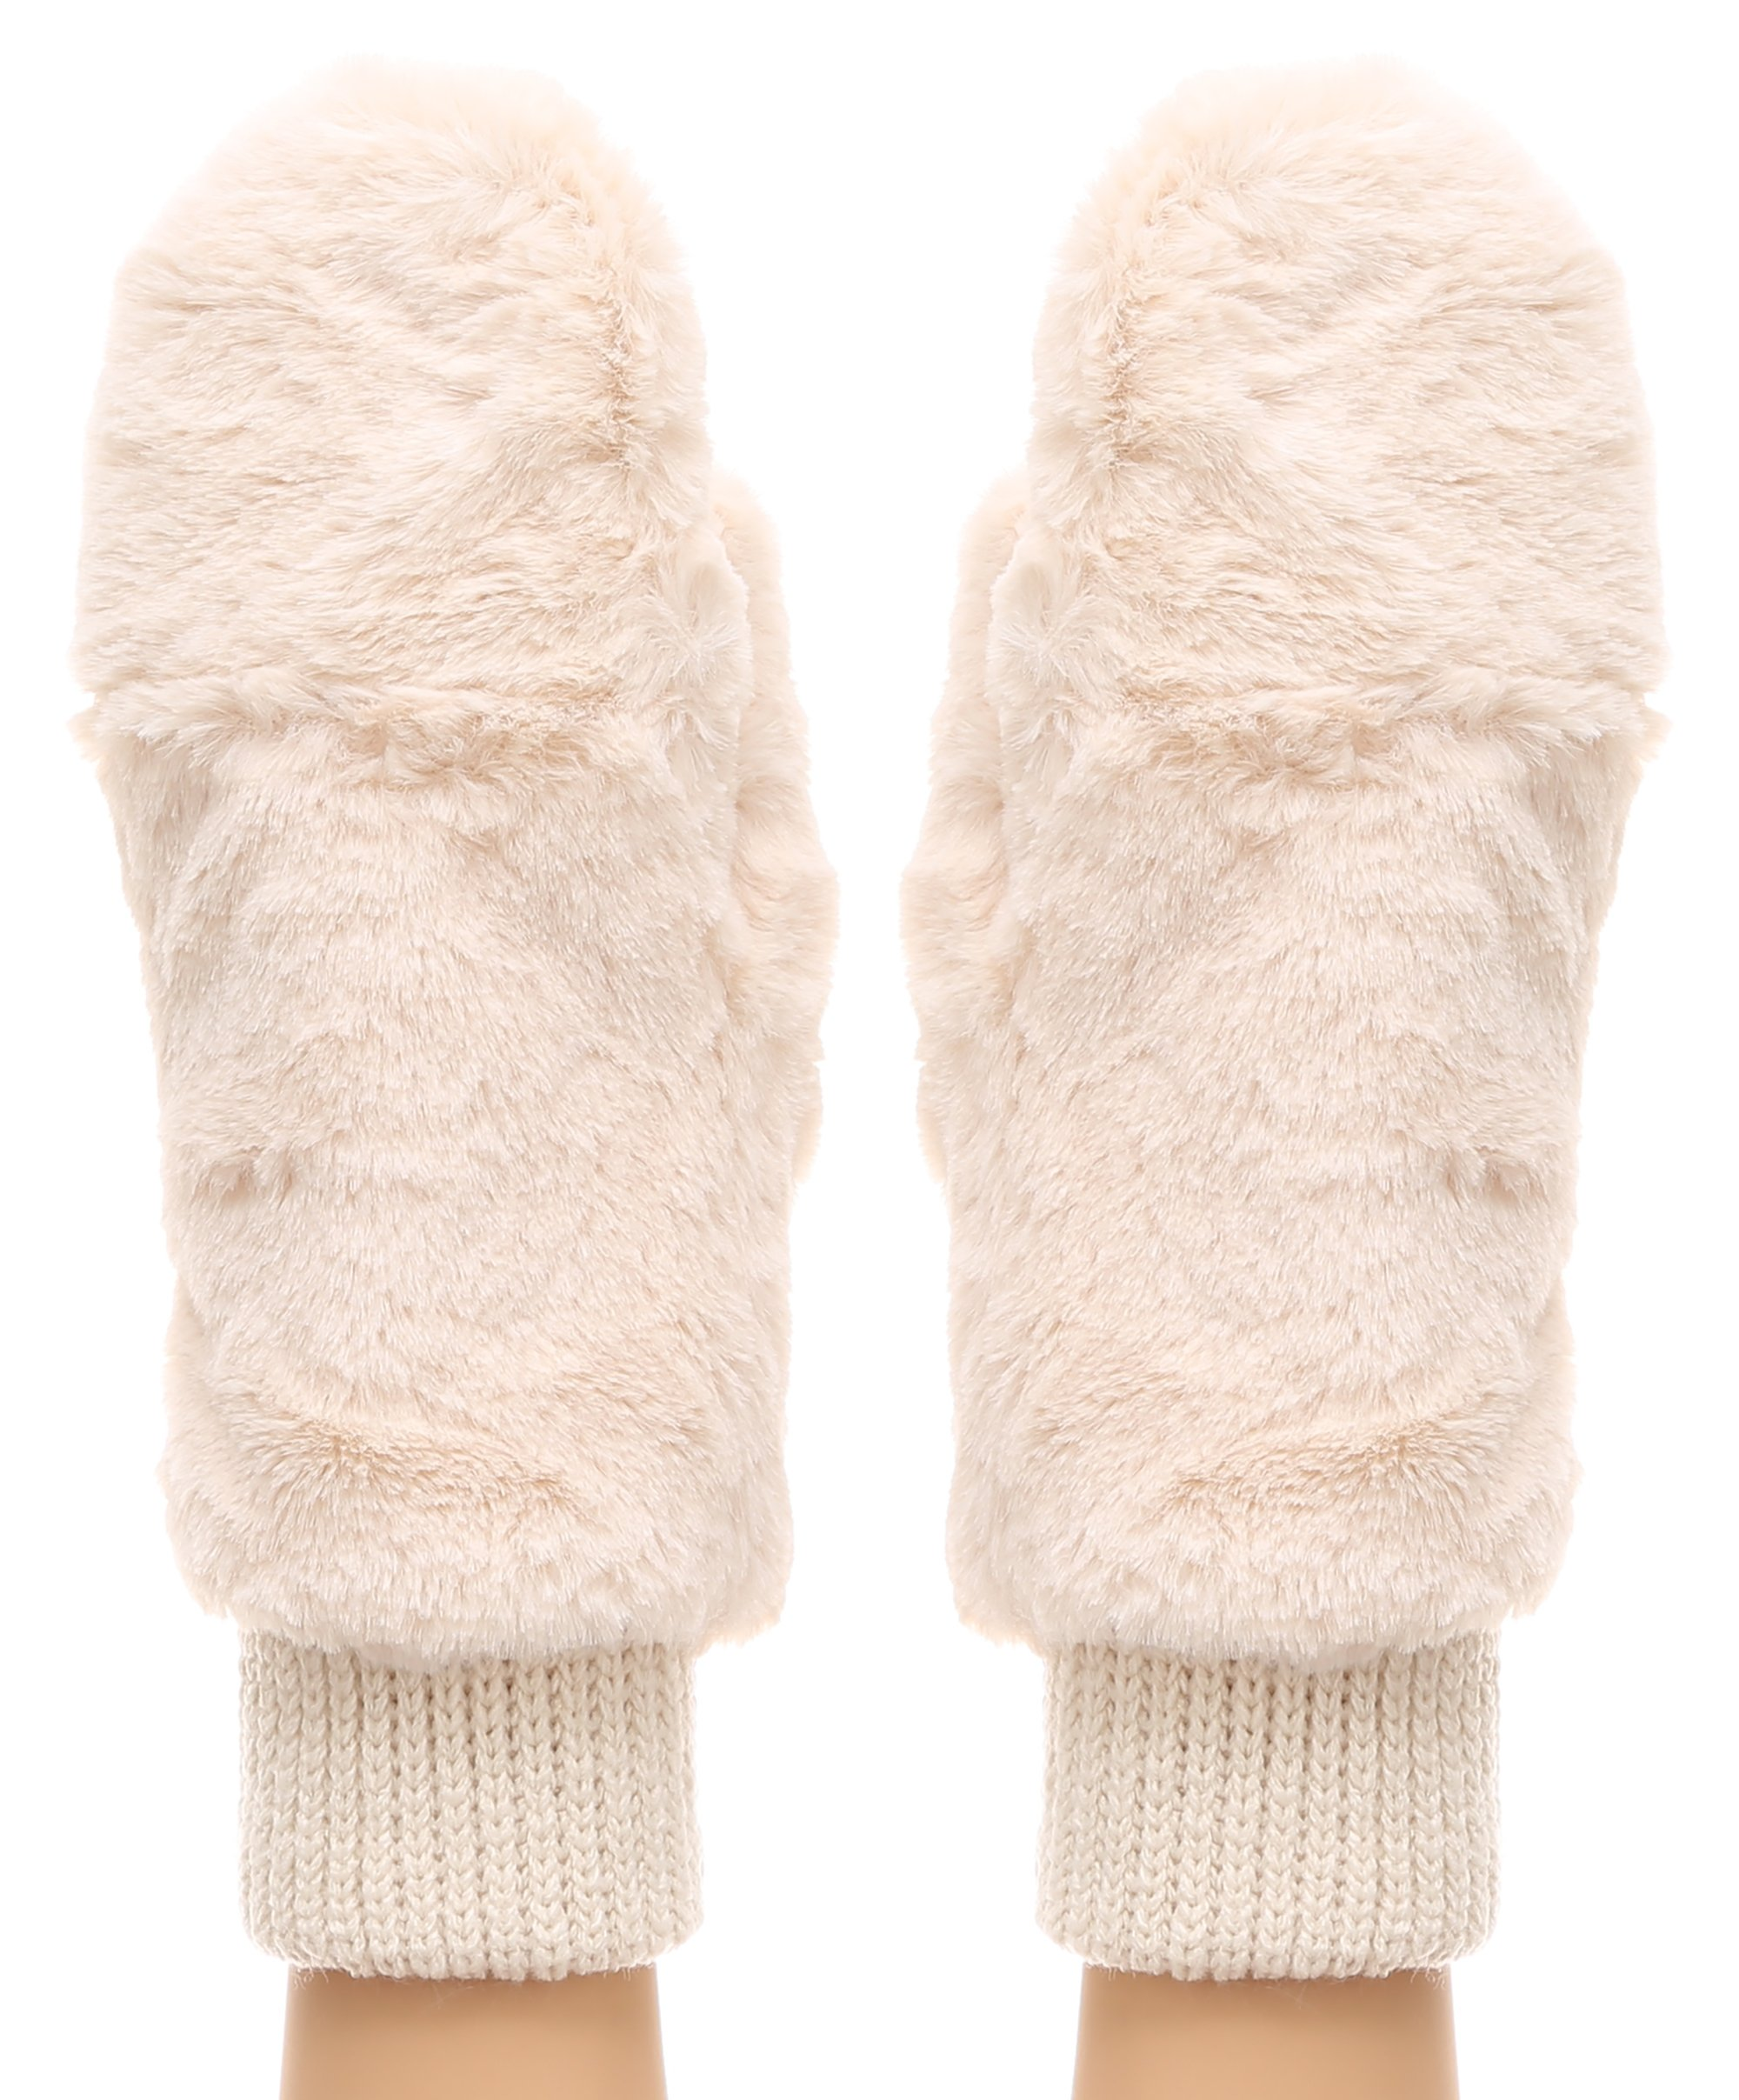 MIRMARU Women's Winter Fully Lined Faux Fur Flip Cover Mitten Gloves.(Ivory)